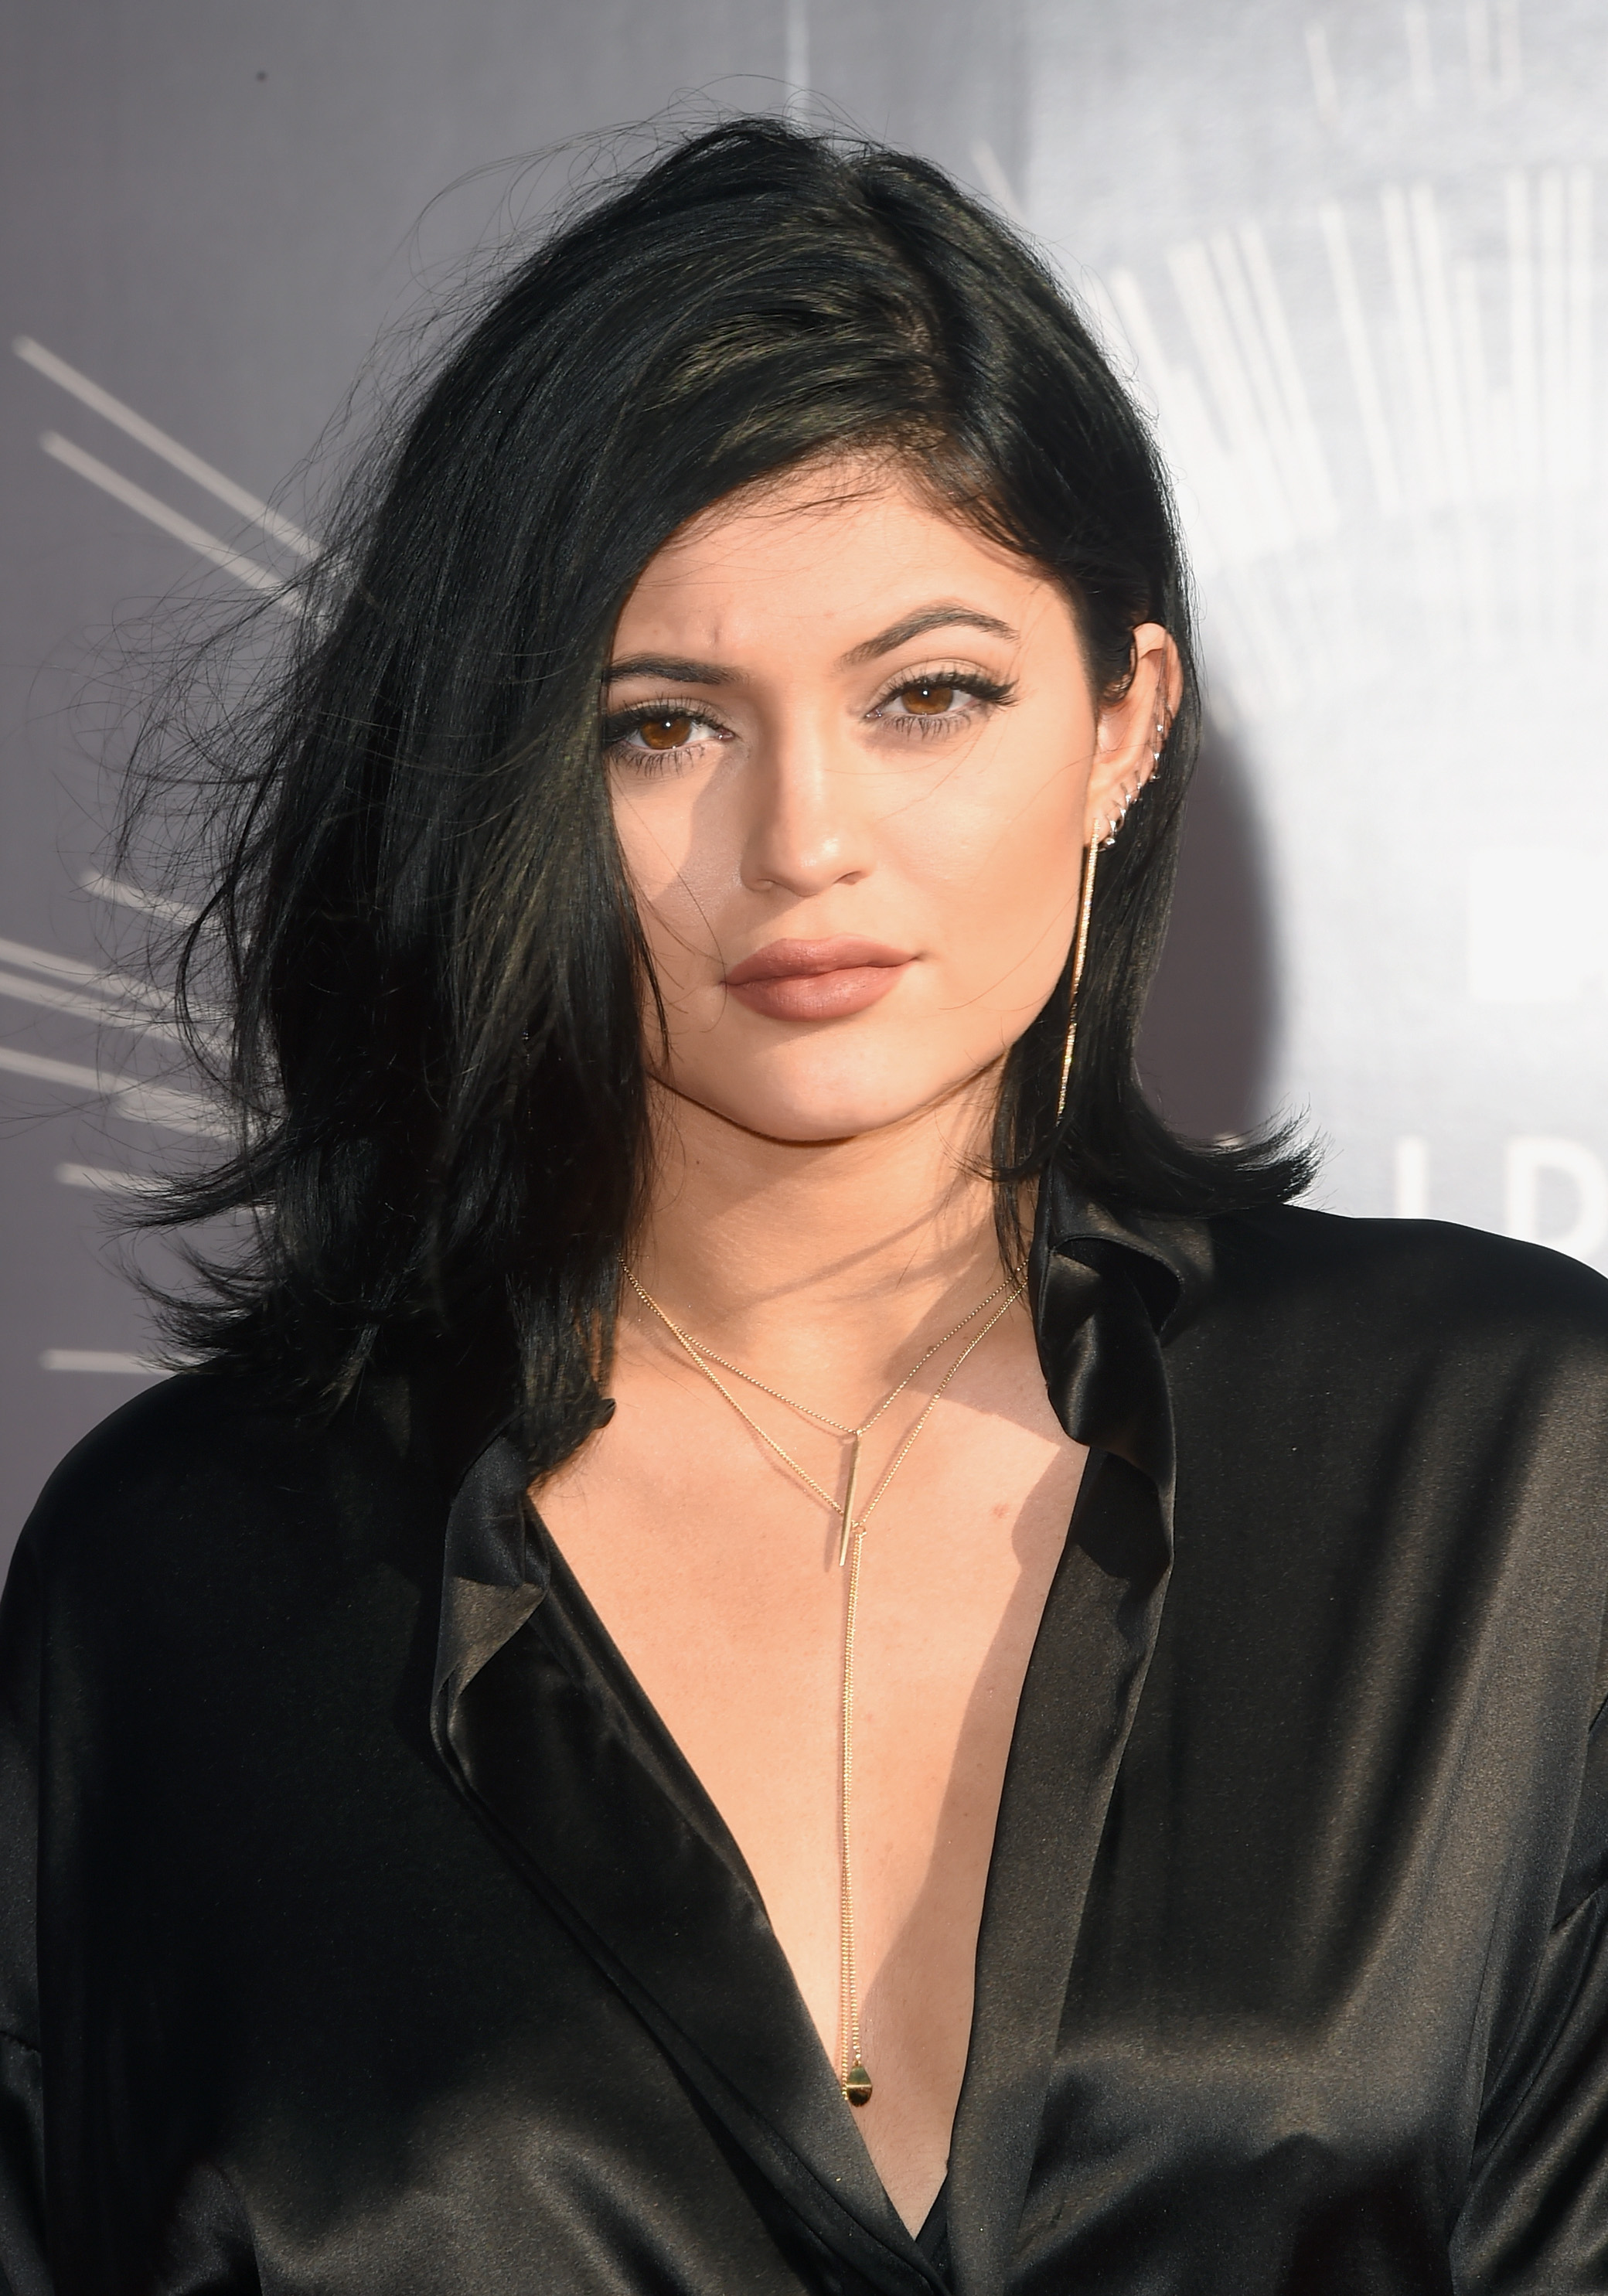 fd0b63fbbfe6 12 Kylie Jenner Outfits For Less That Prove Her High End Style Is  Attainable For Everyone